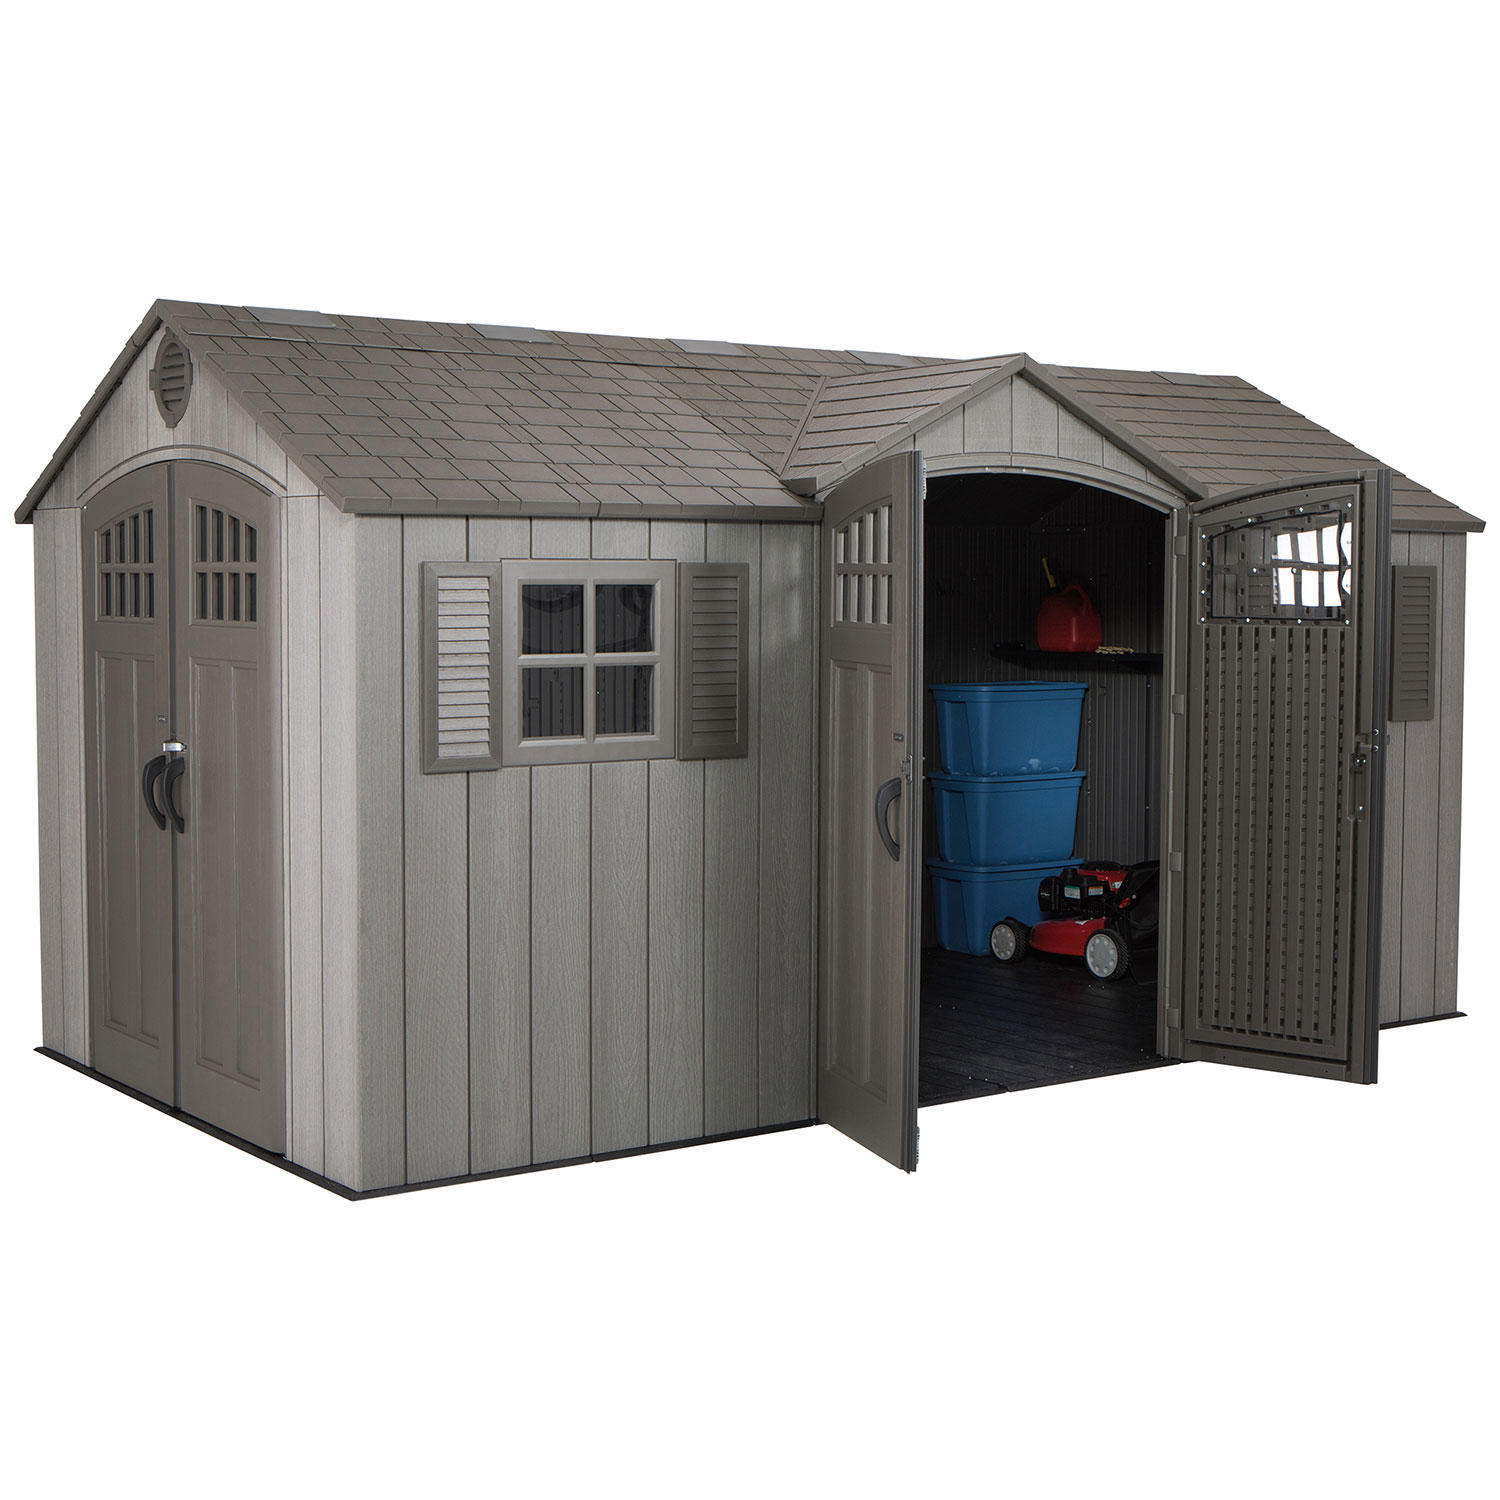 "Lifetime 15"" X 8"" Rough Cut Dual-Entry Outdoor Storage Shed"